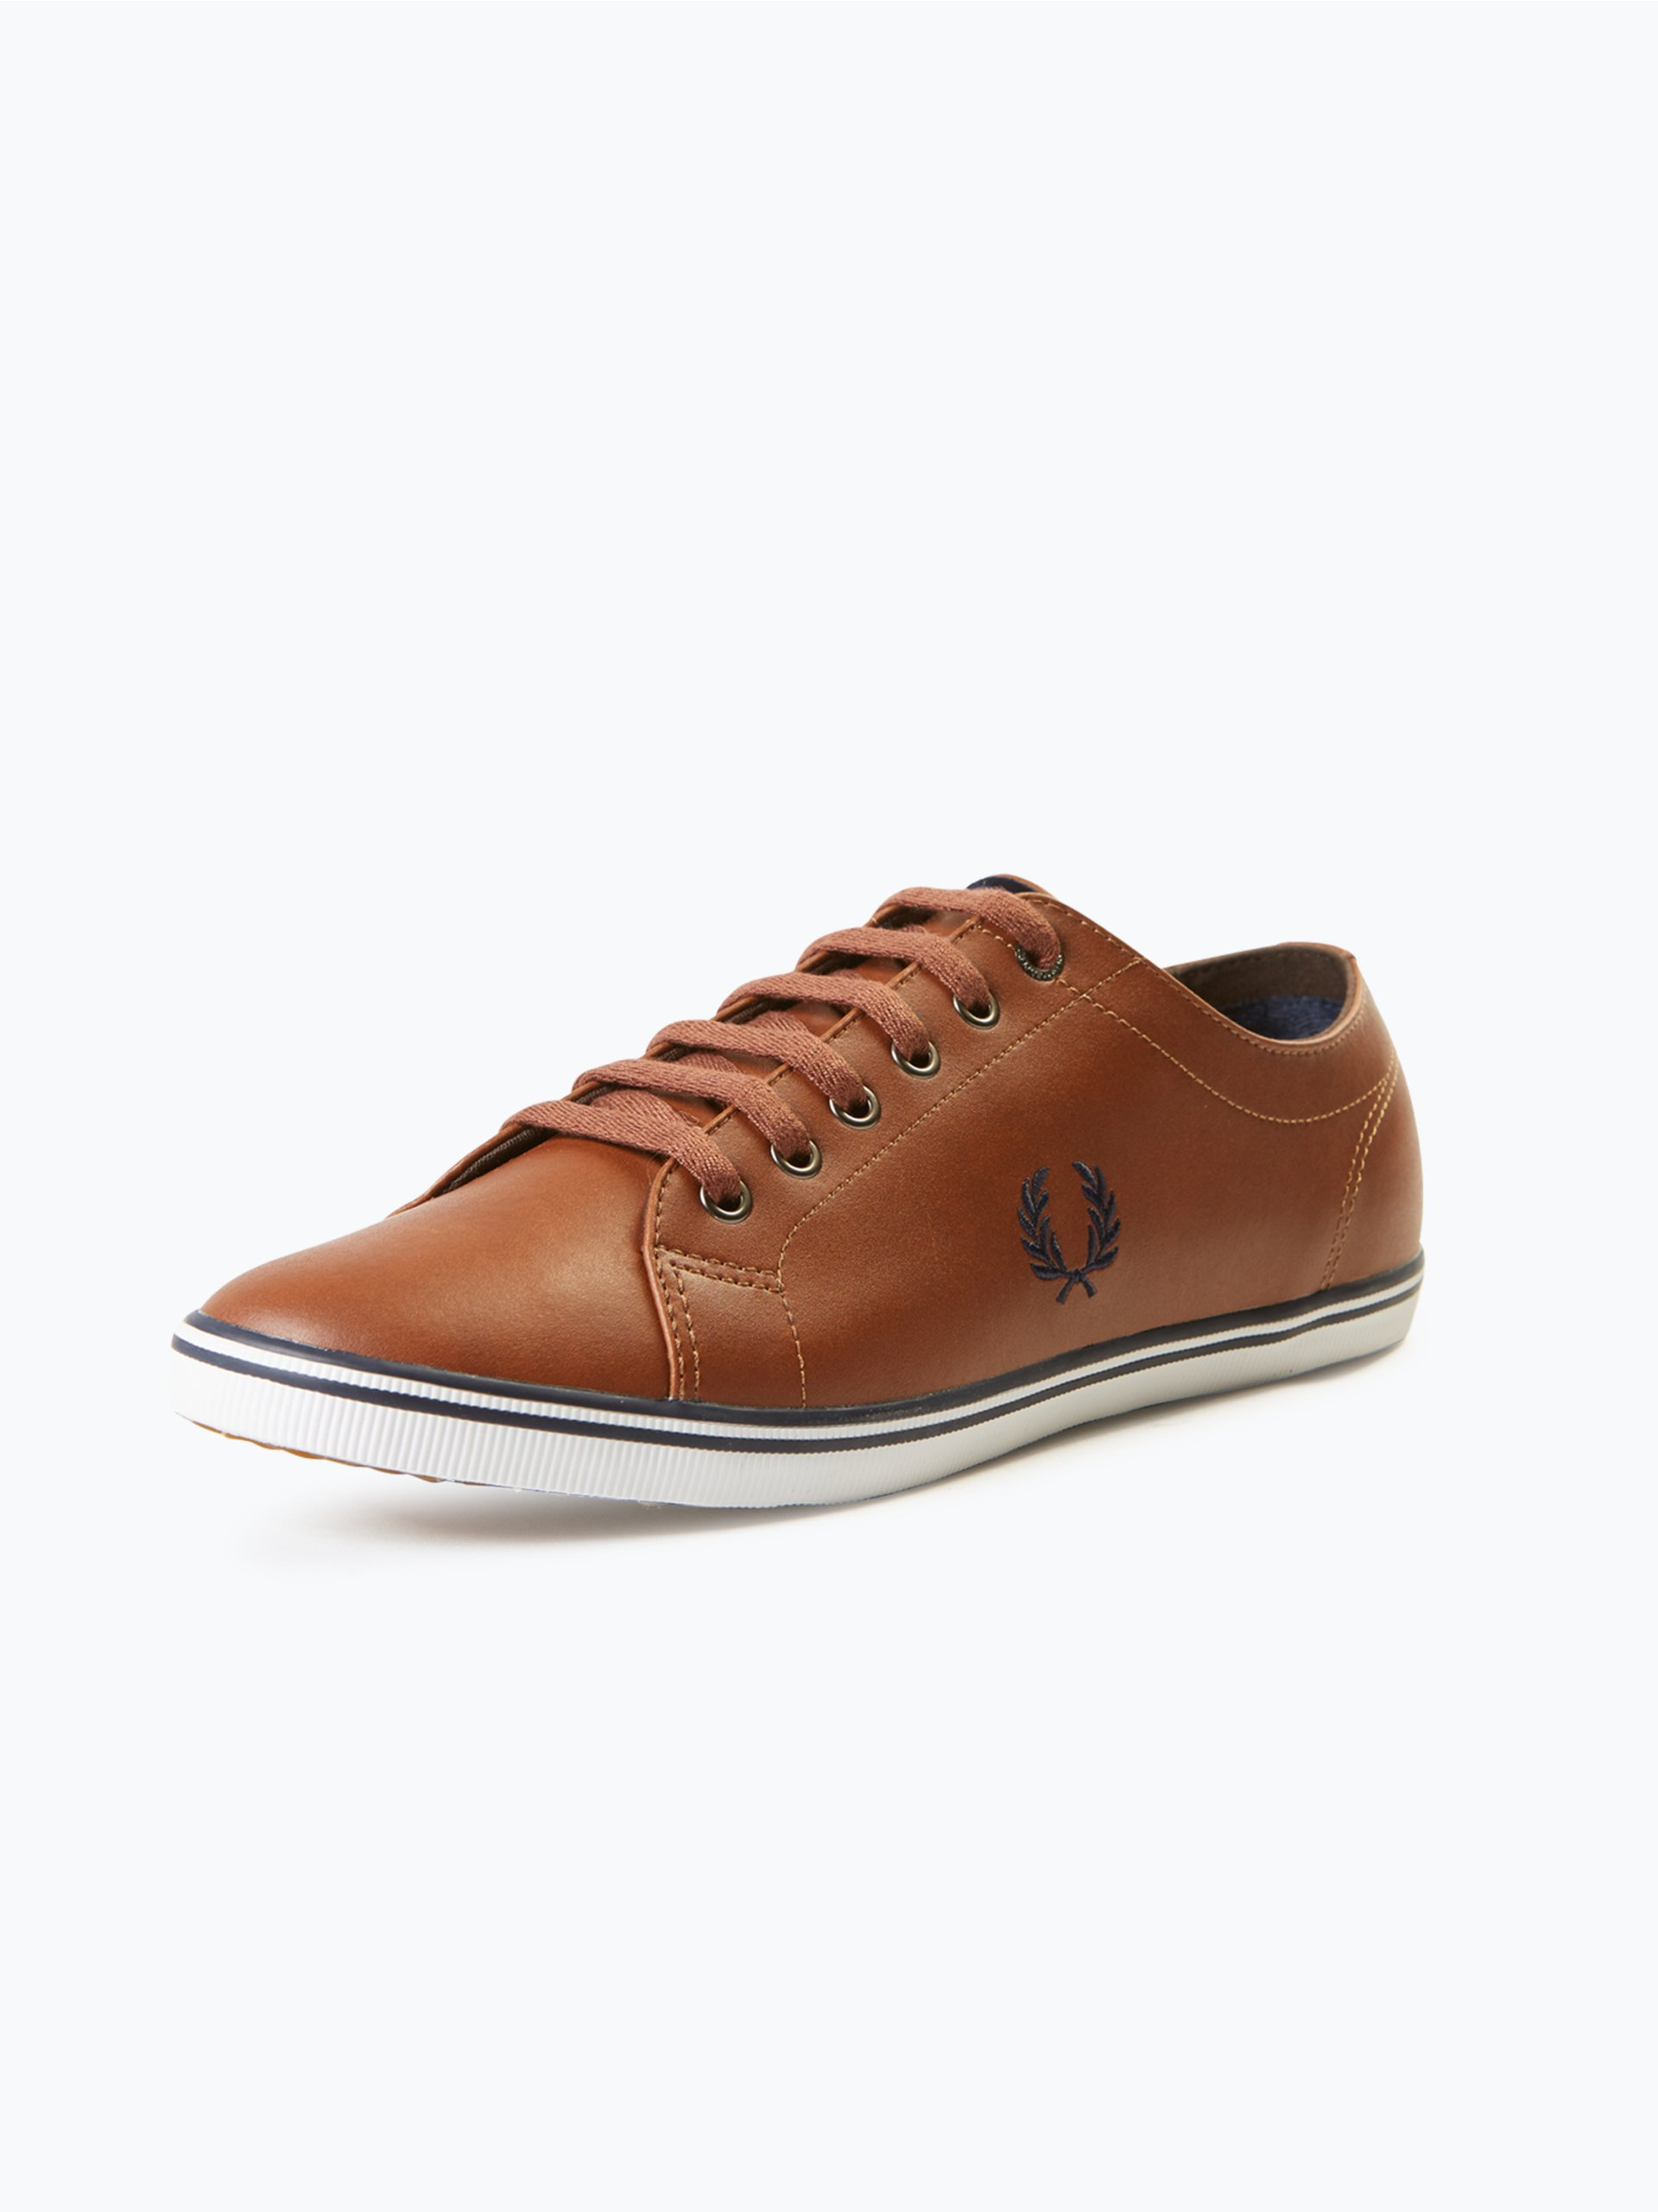 fred perry herren sneaker aus leder kingston cognac uni. Black Bedroom Furniture Sets. Home Design Ideas